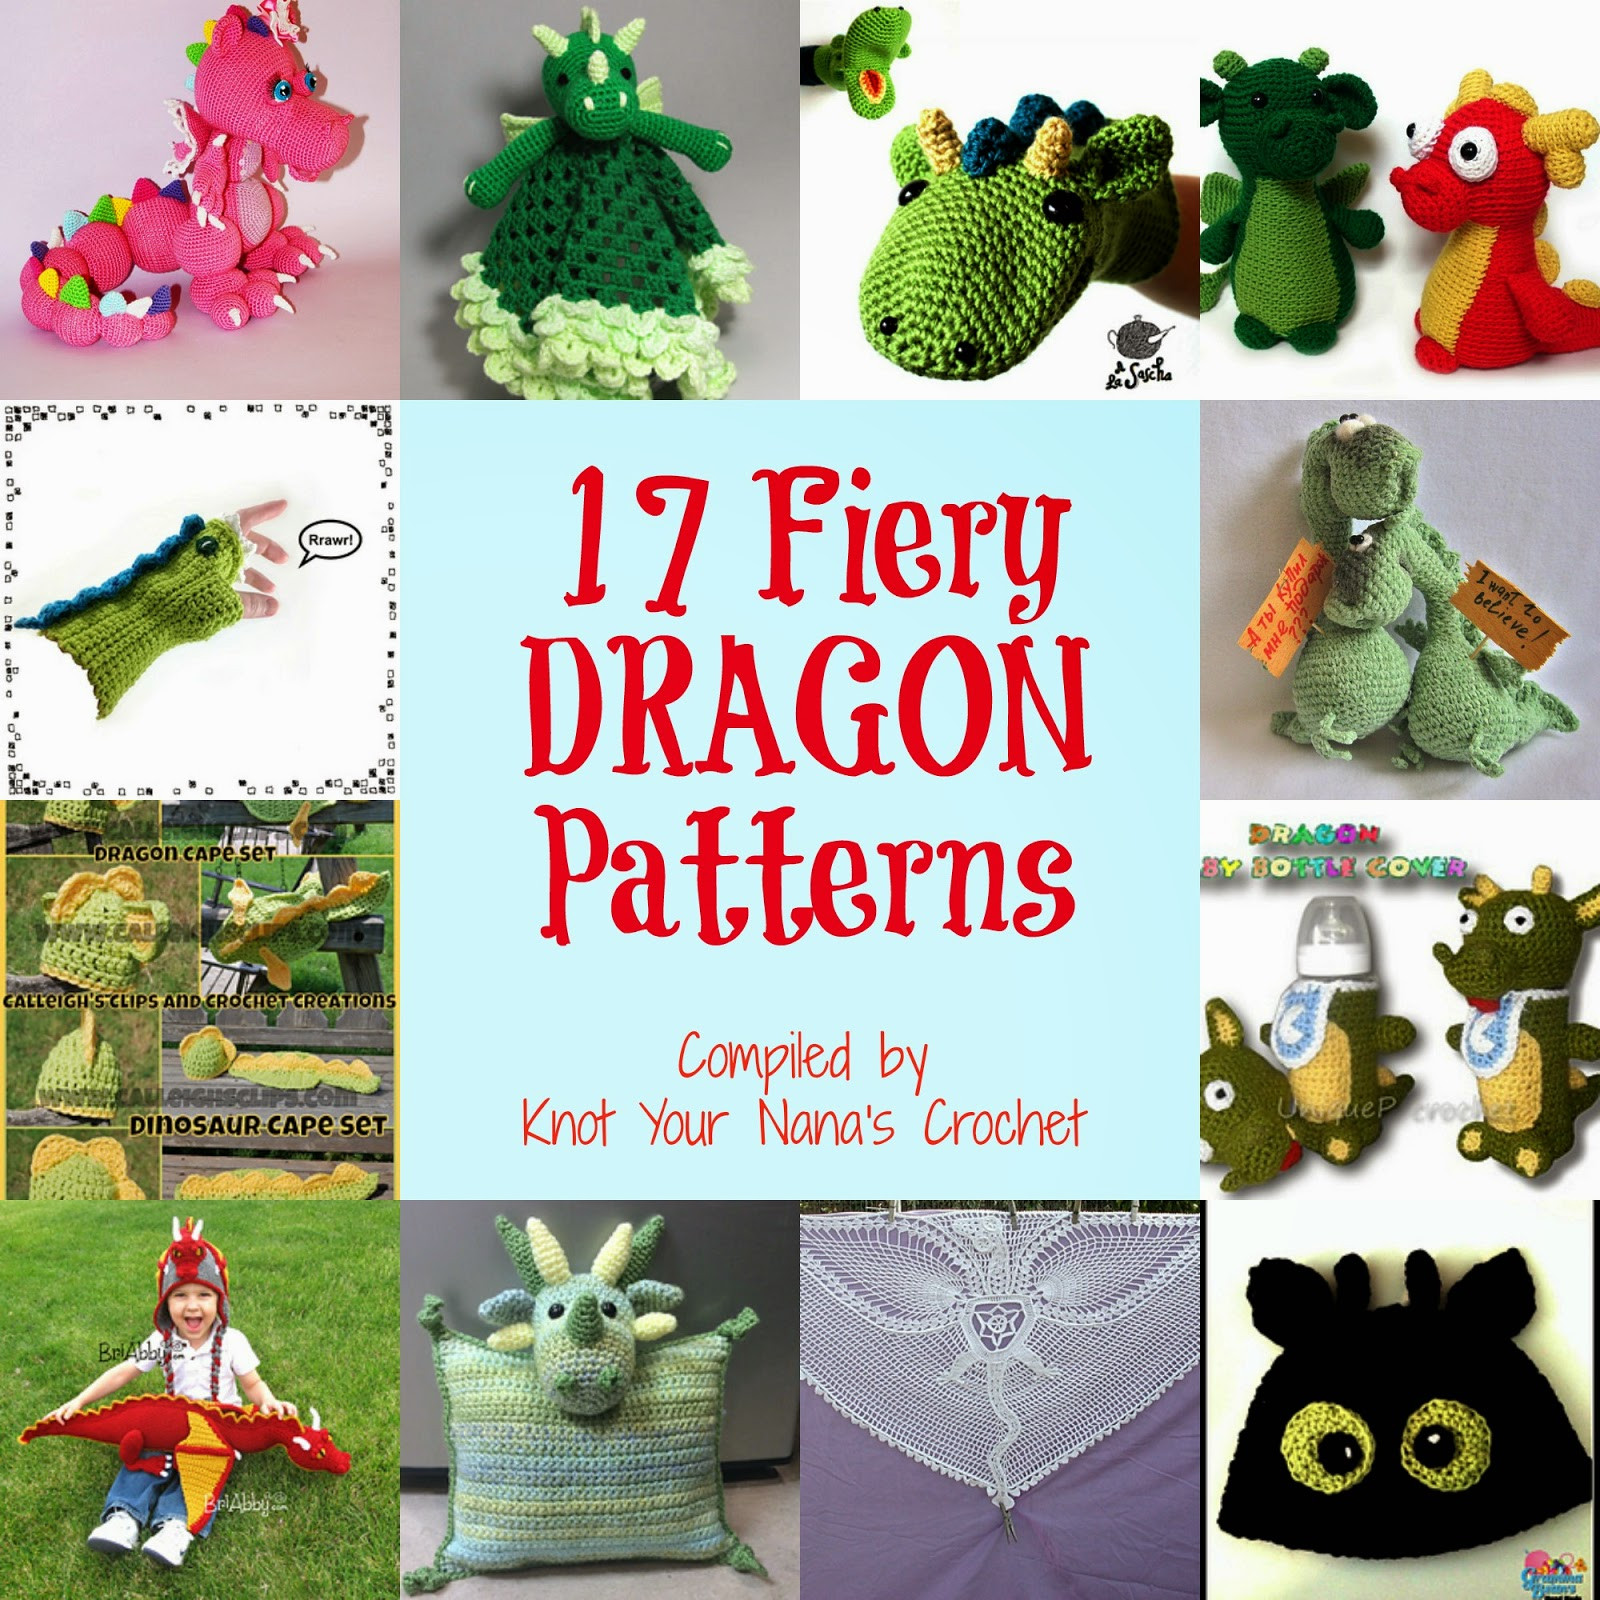 Free Crochet Dragon Pattern New Knot Your Nana S Crochet Smaug the African Flower Dragon Of Amazing 50 Images Free Crochet Dragon Pattern